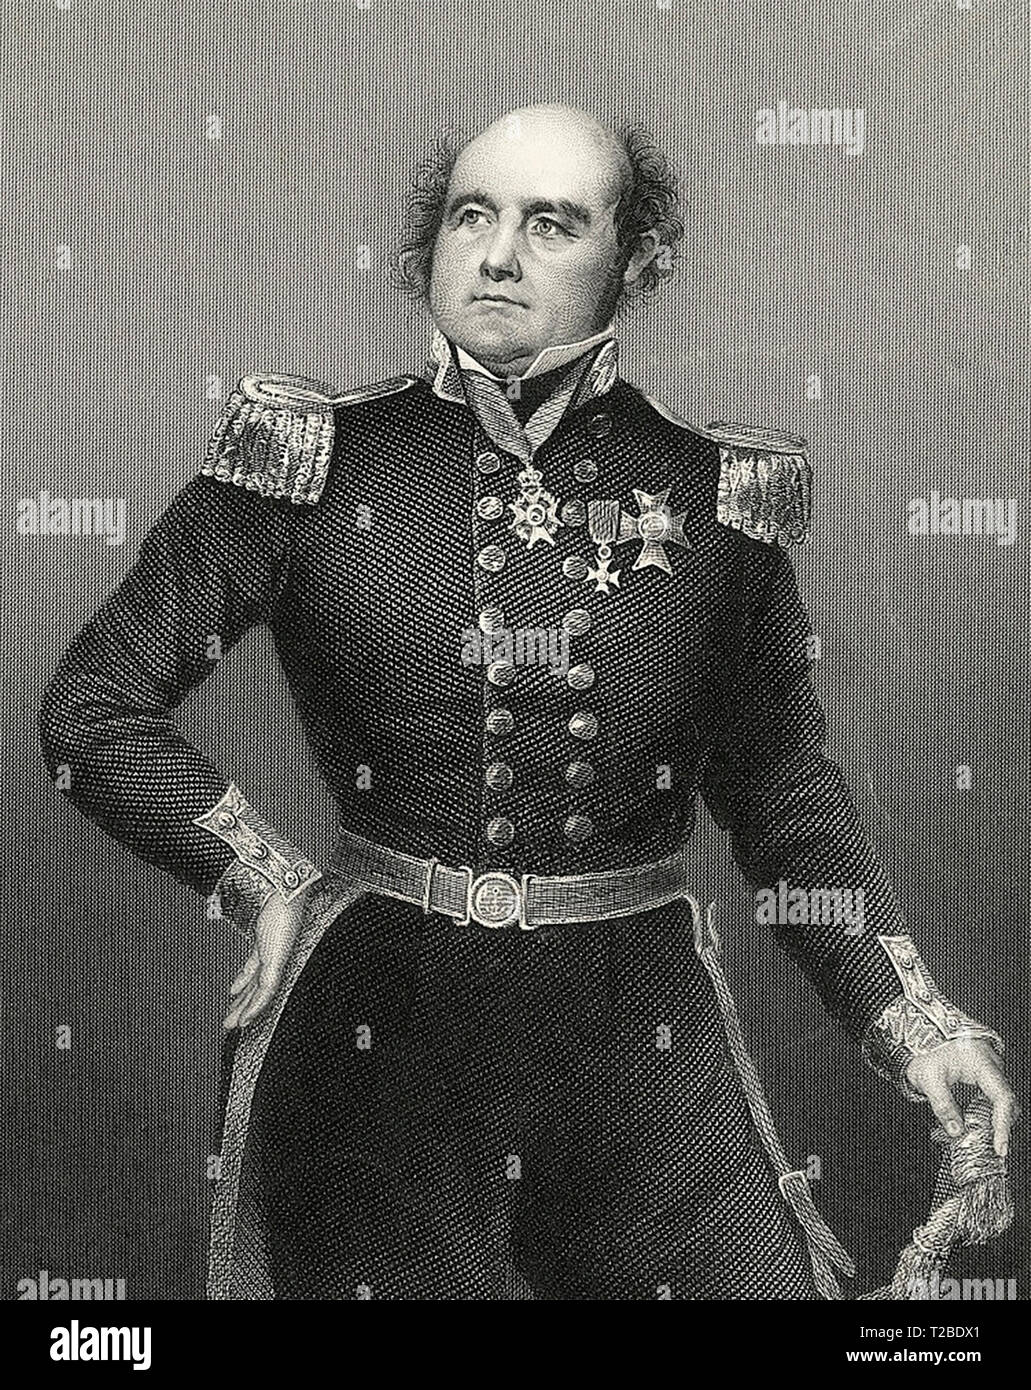 Sir John Franklin (1786-1847), English sea captain and Arctic explorer. - Stock Image